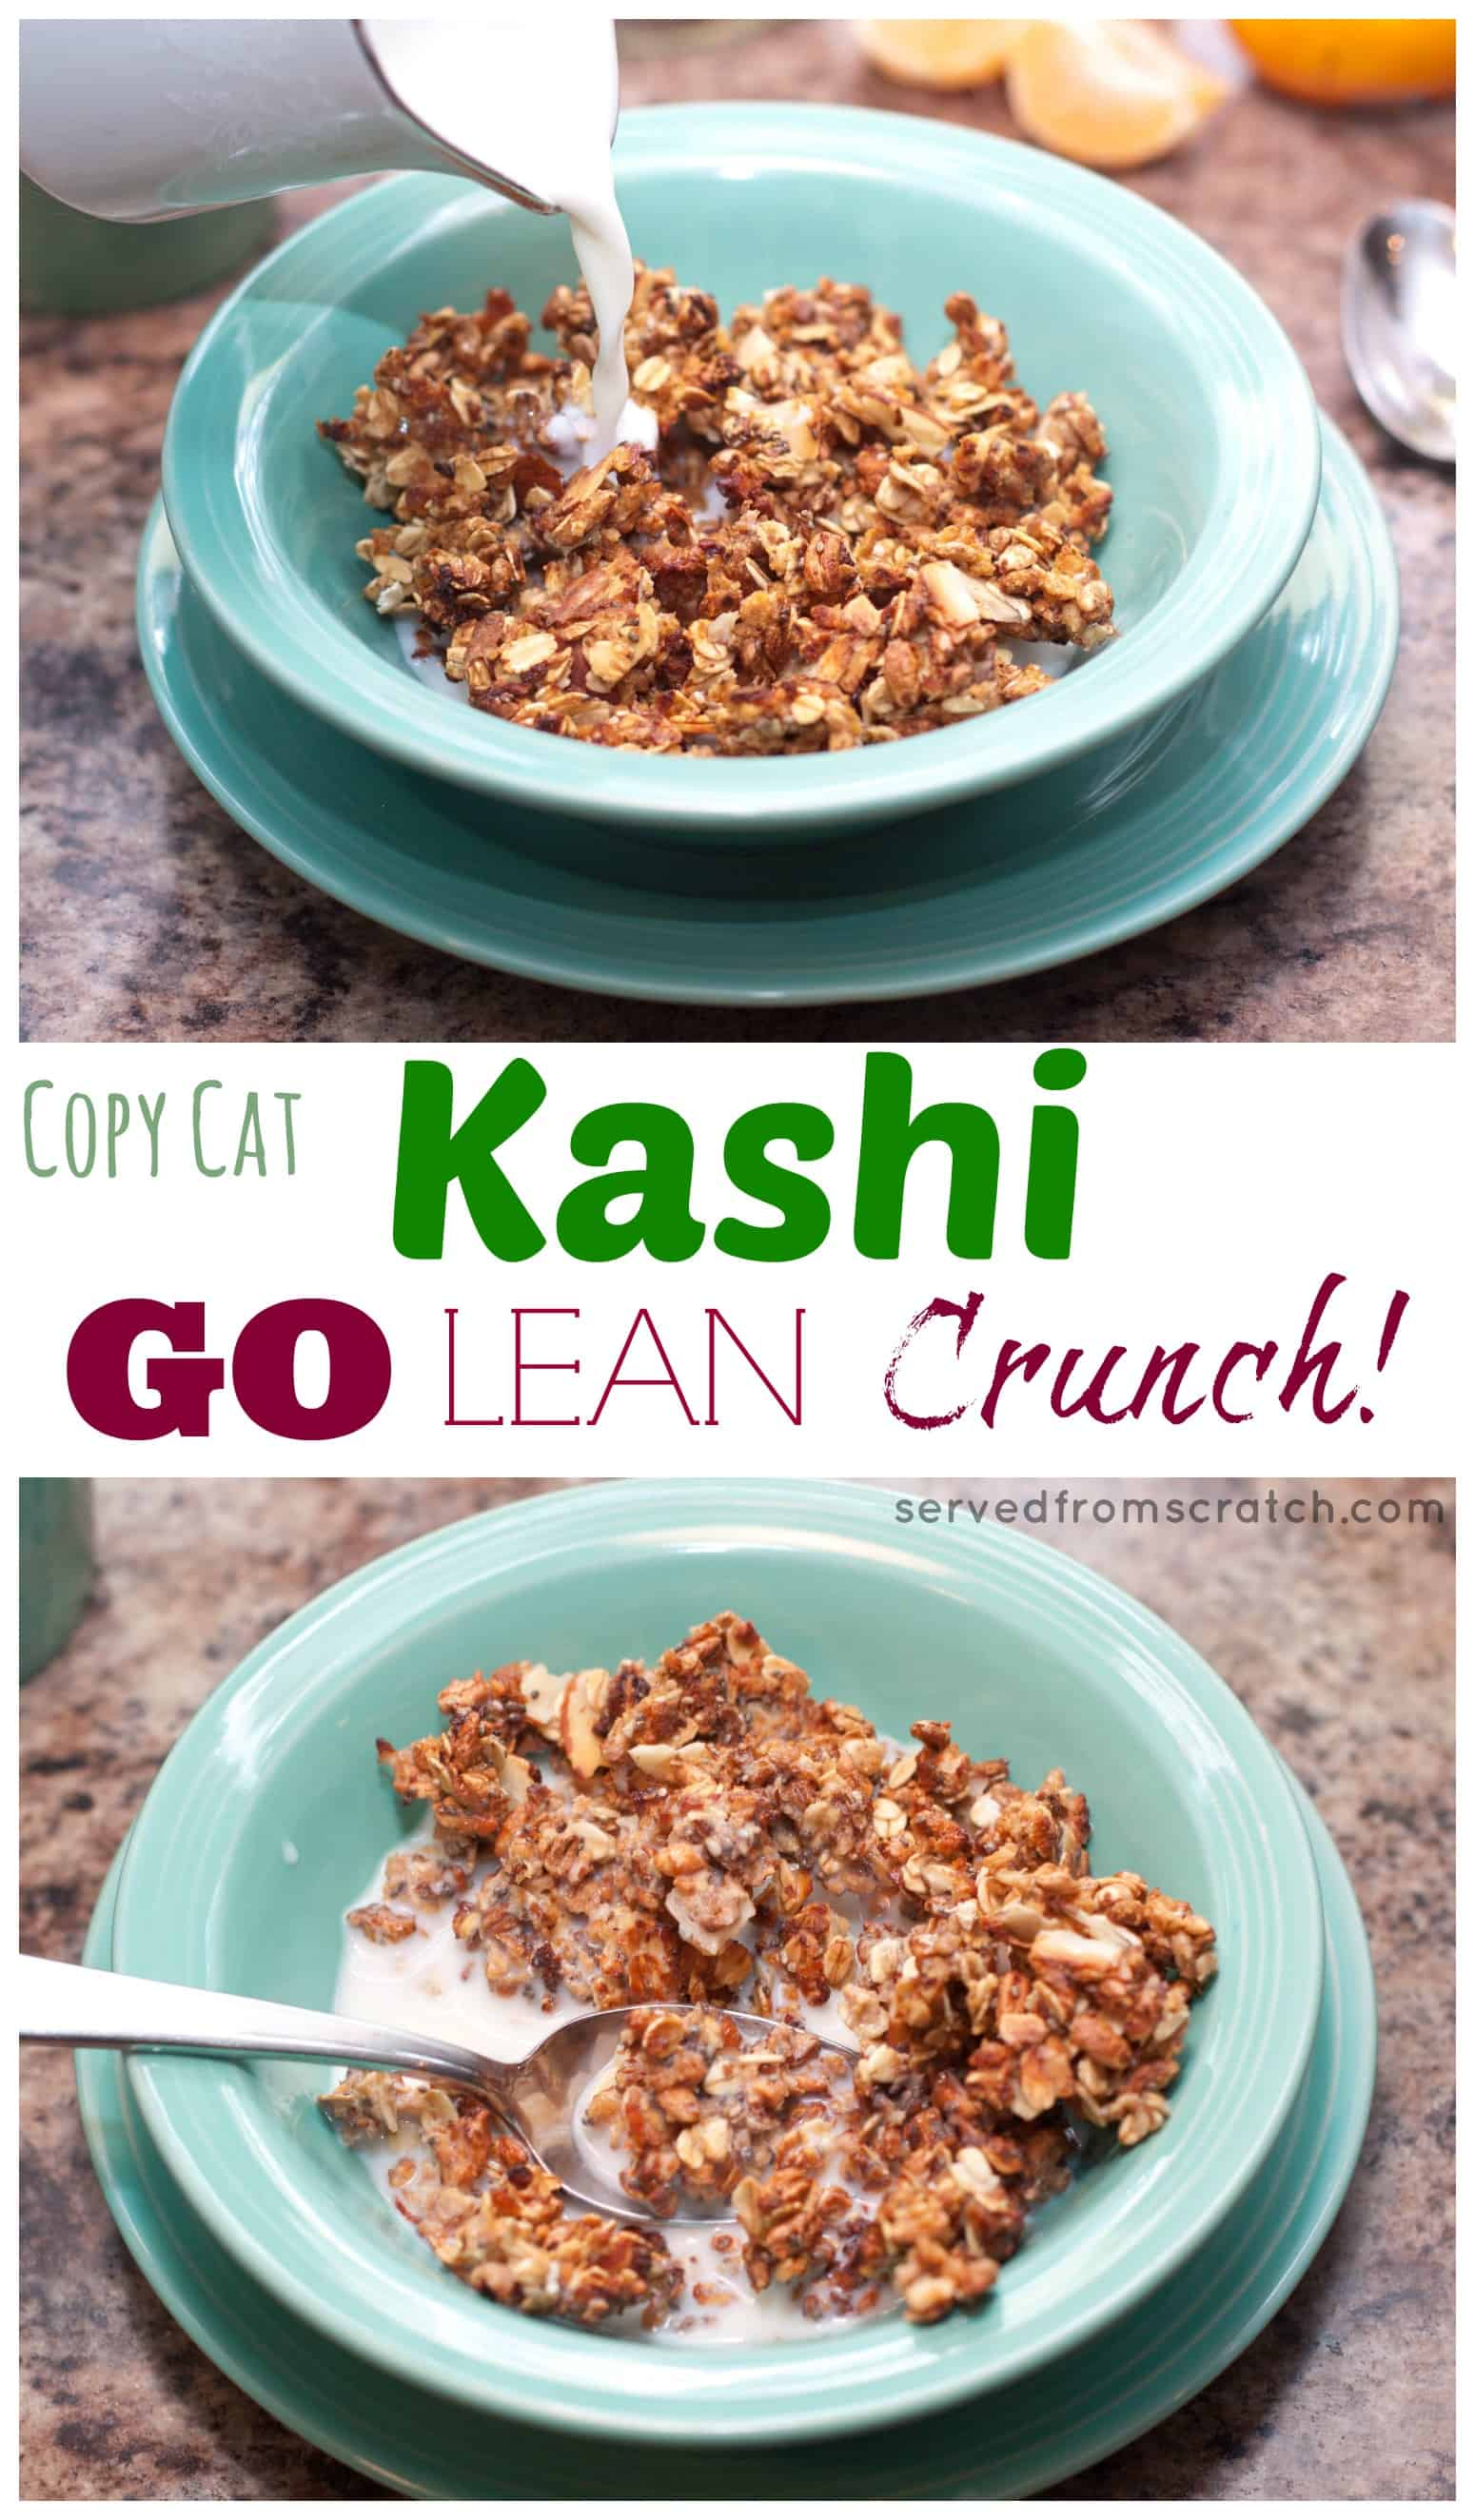 Go lean crunch healthy